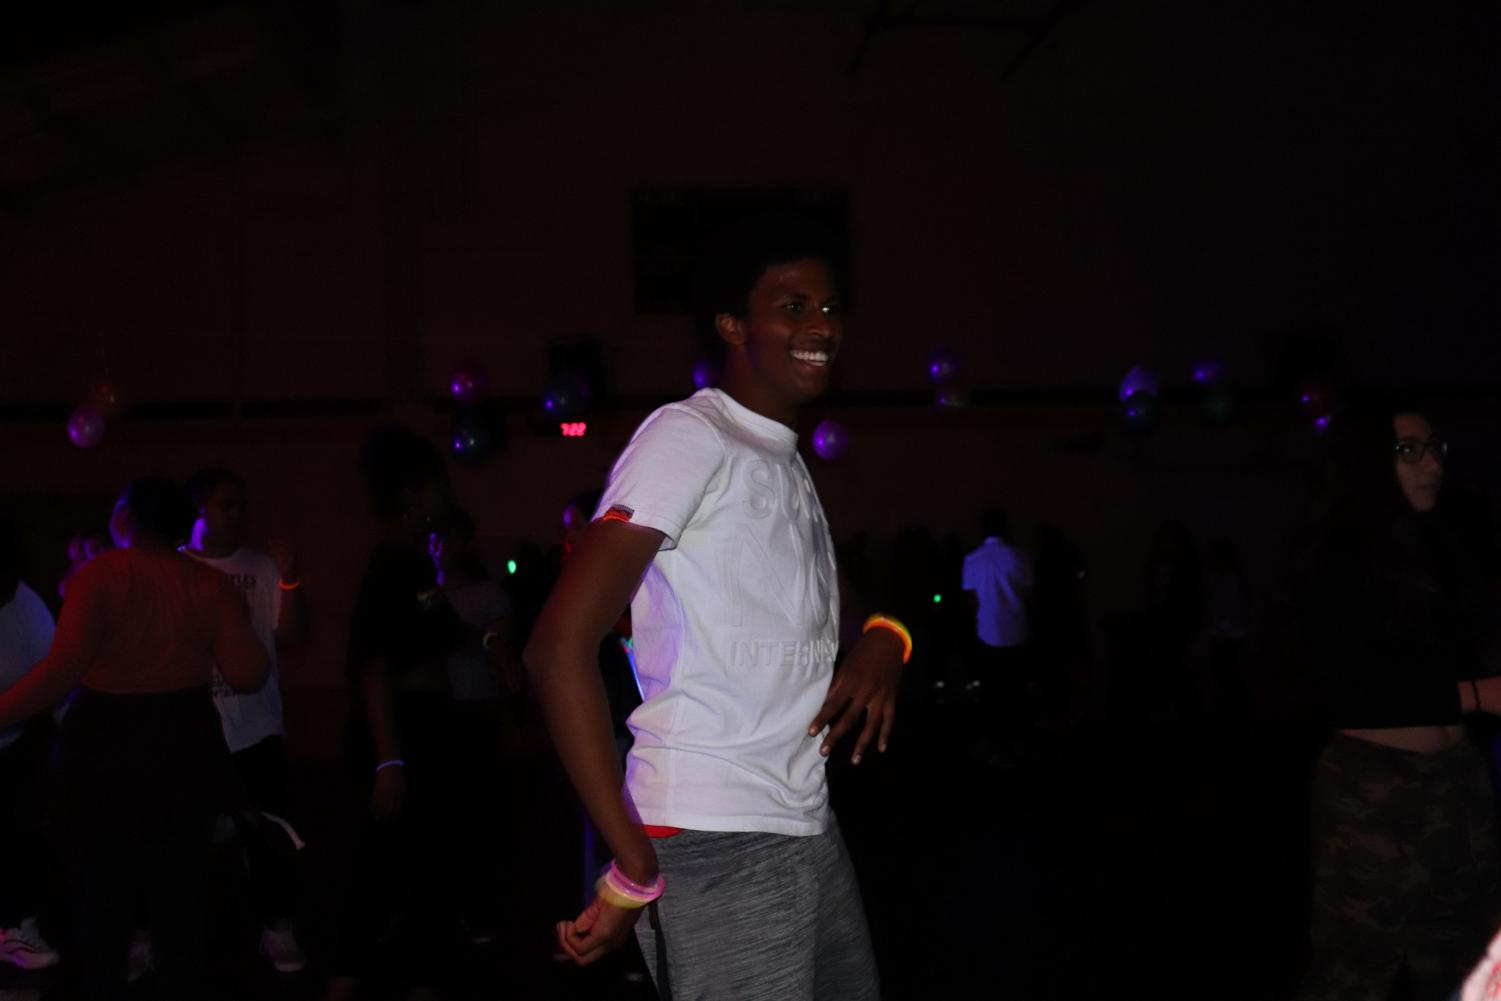 Ilyass Sugal busting some moves. He attended the Glow Up Dance (Yearbook for Lincoln Lion Tales).